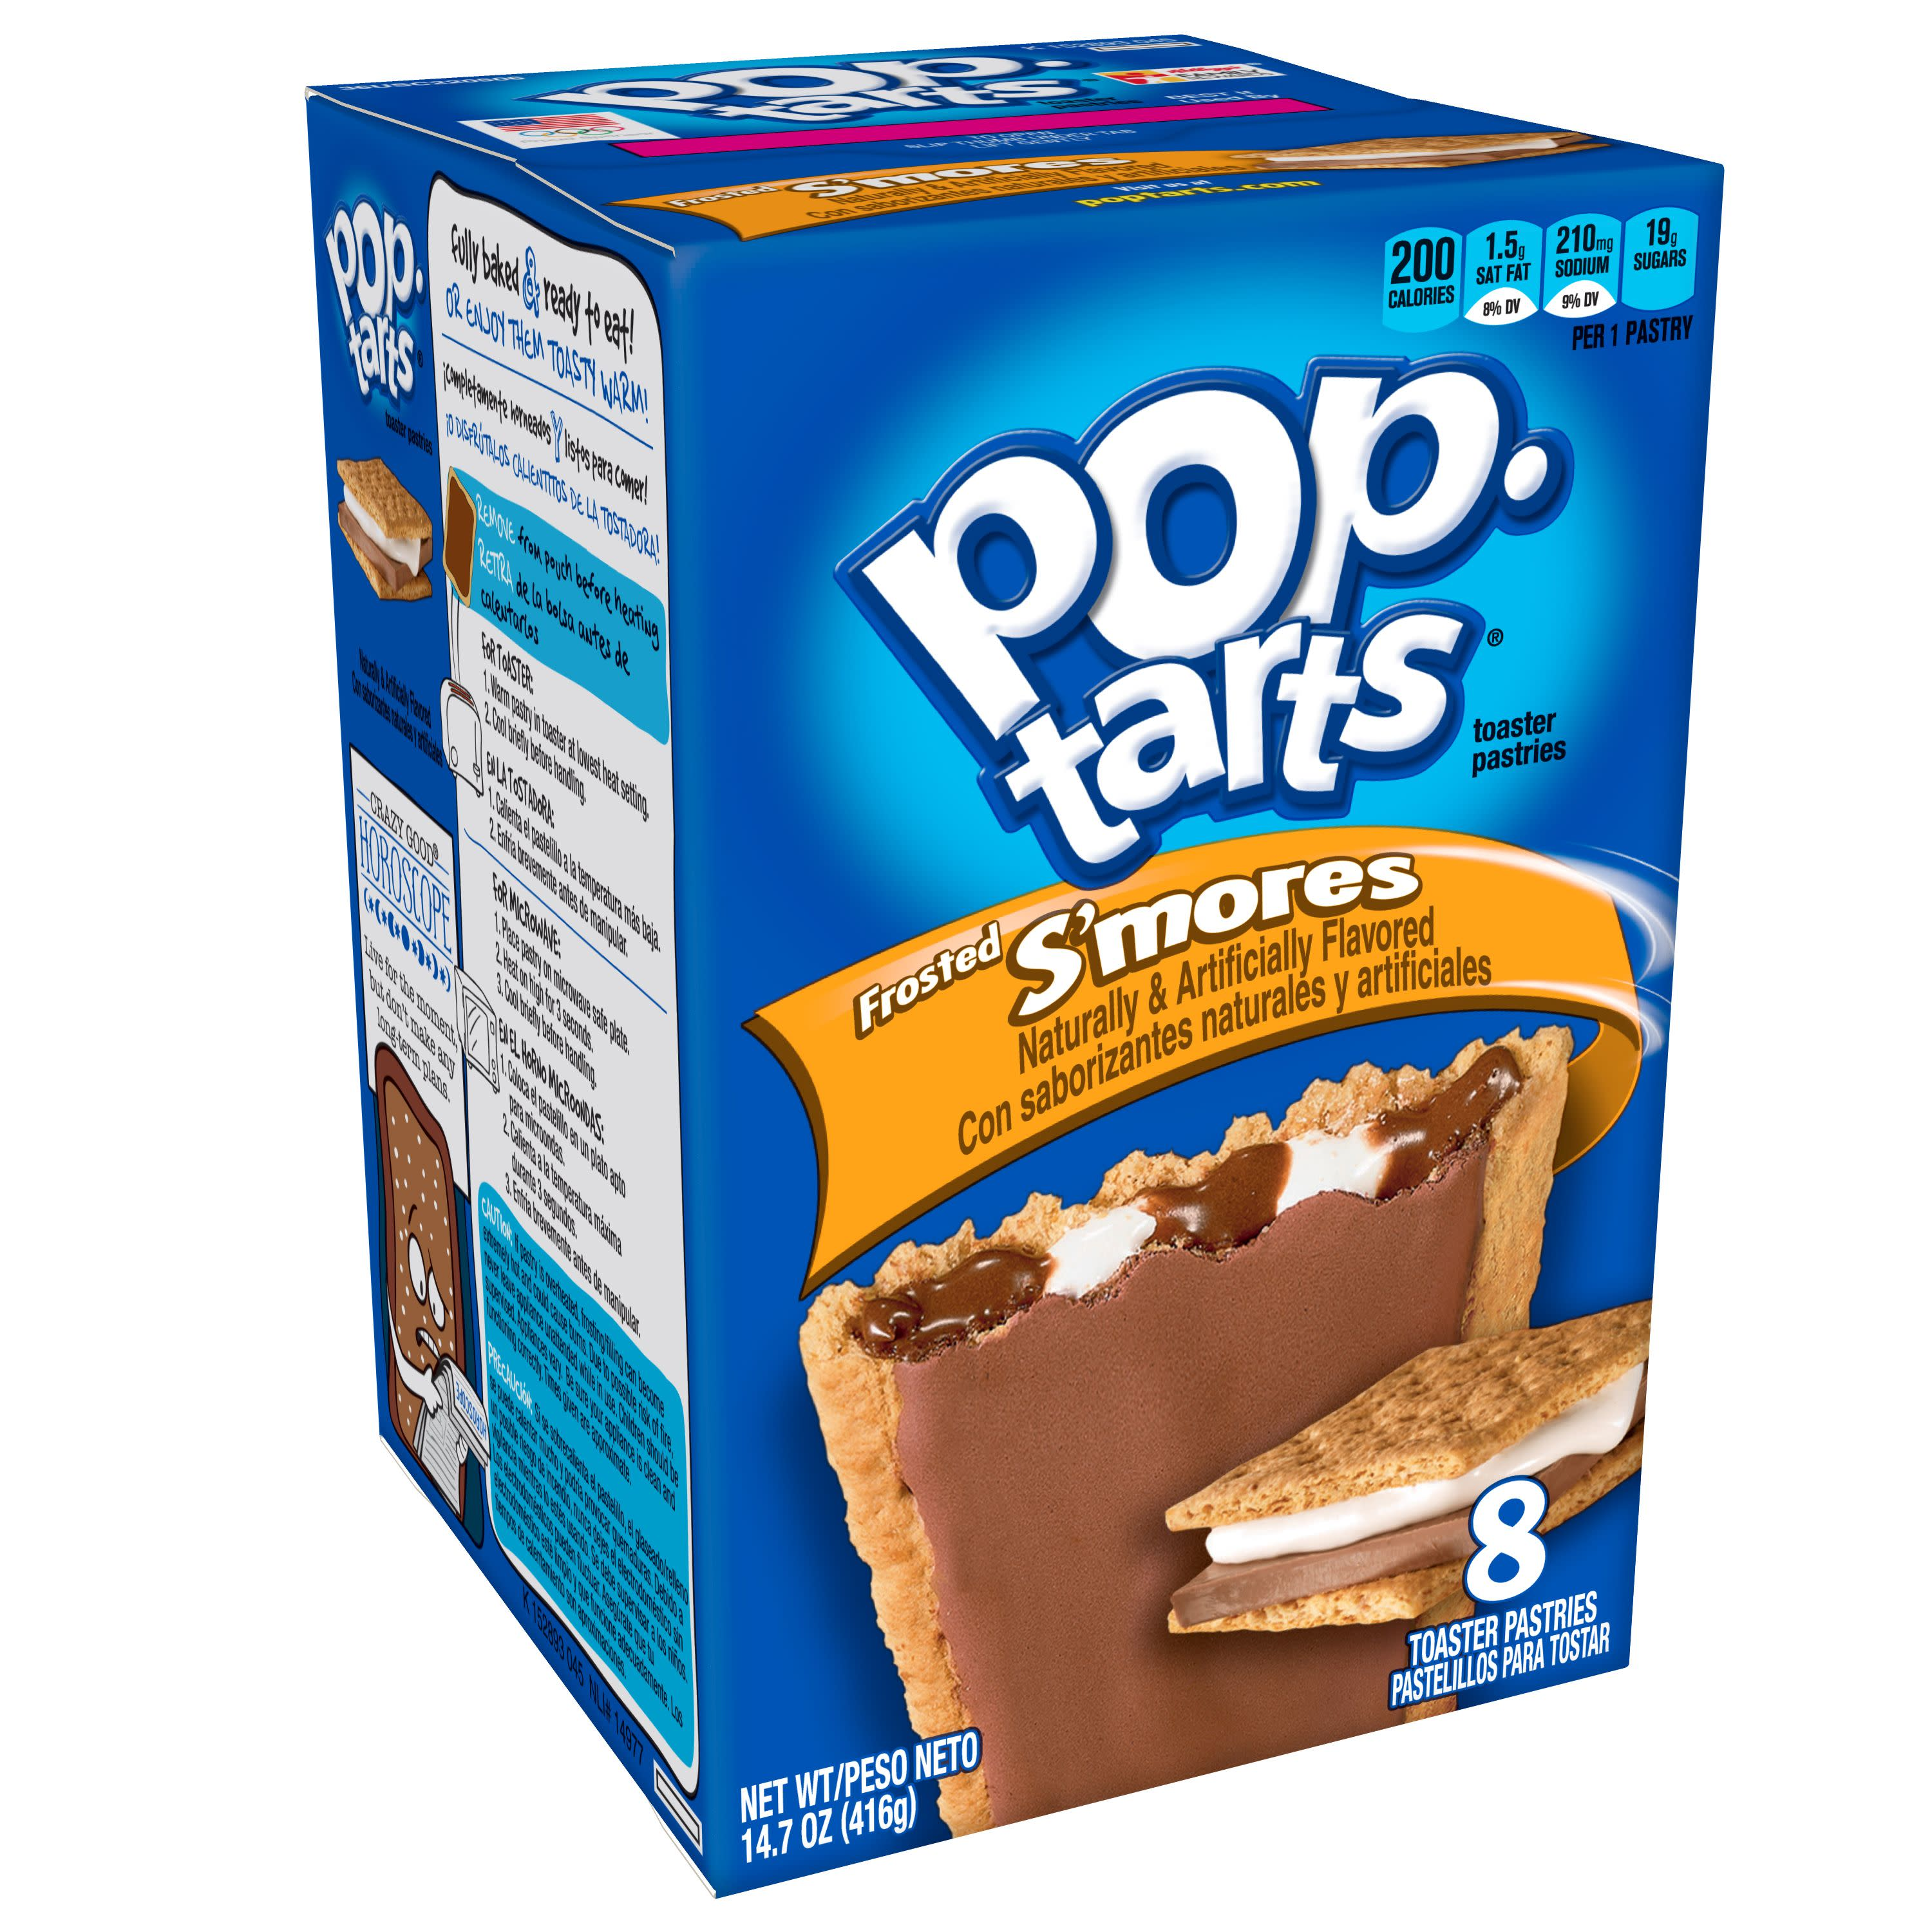 Kellogg's Pop-Tarts Breakfast Toaster Pastries, Frosted S'mores, 14.7 oz, 8 count (12 Packs)